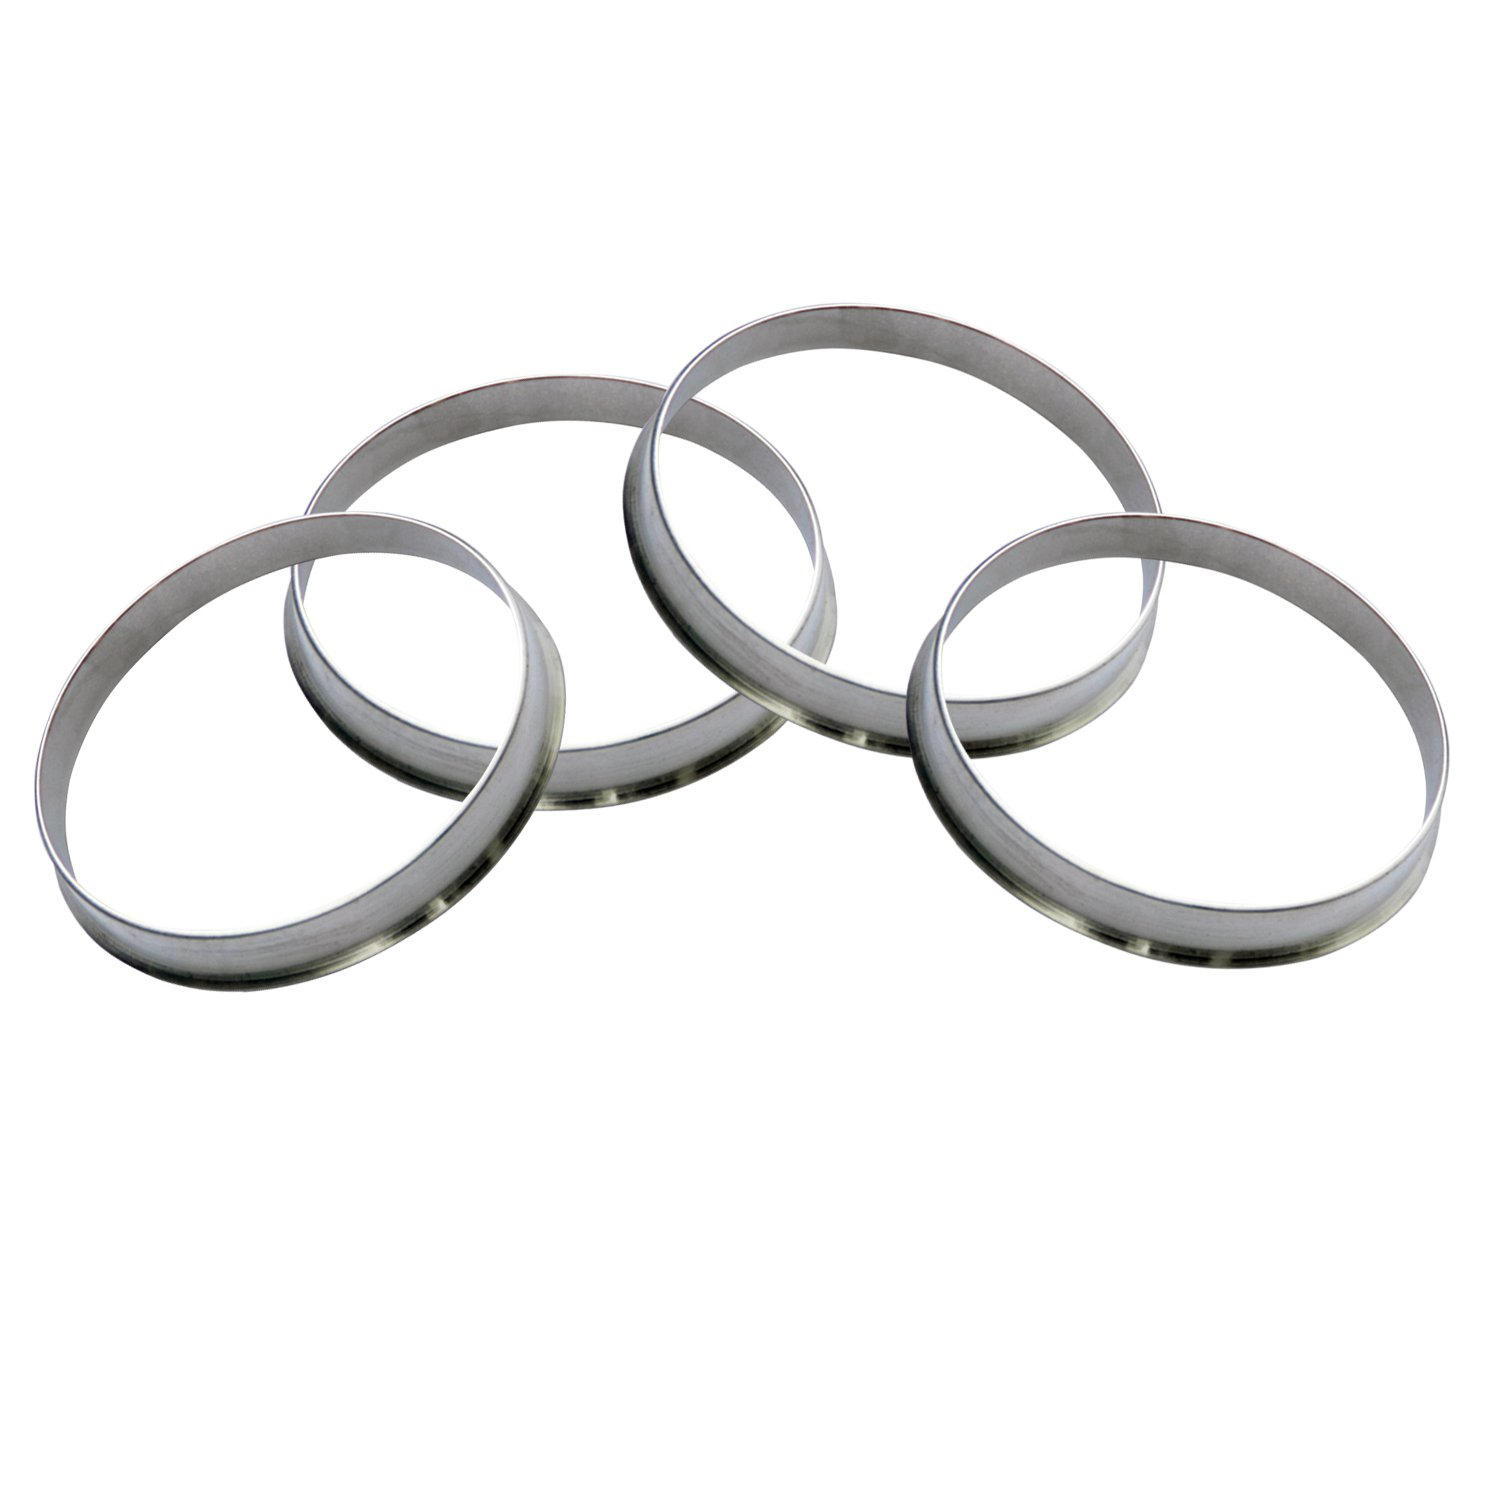 GDSMOTU 4pc Alloy Aluminum 108mm OD to 106mm ID Hub Centric Rings - Performance Hubrings for 106mm Vehicle Hubs with 108mm Wheels Center Bore